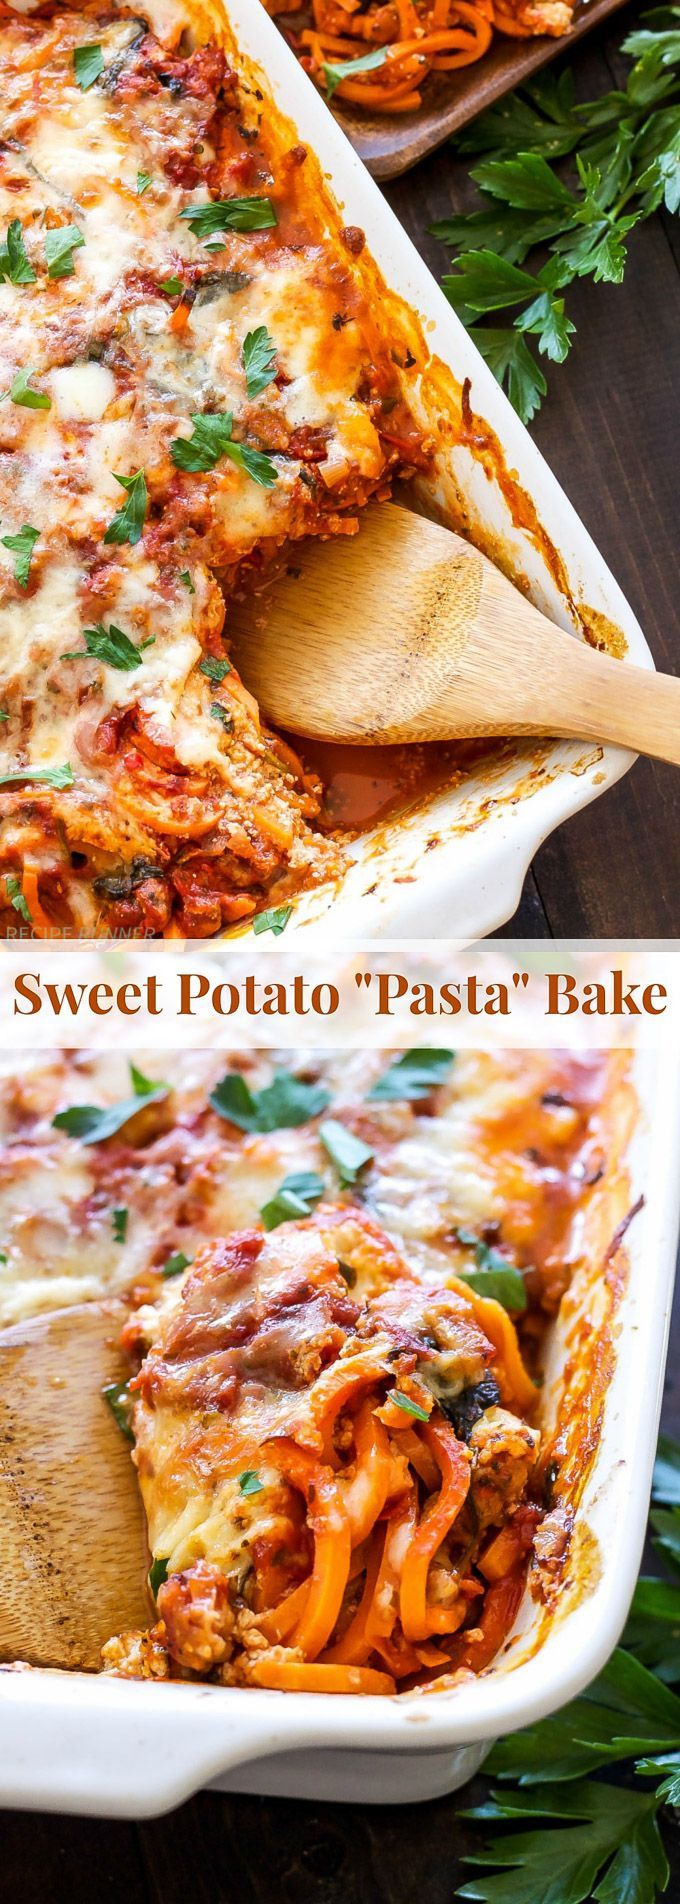 "Sweet Potato ""Pasta"" Bake 